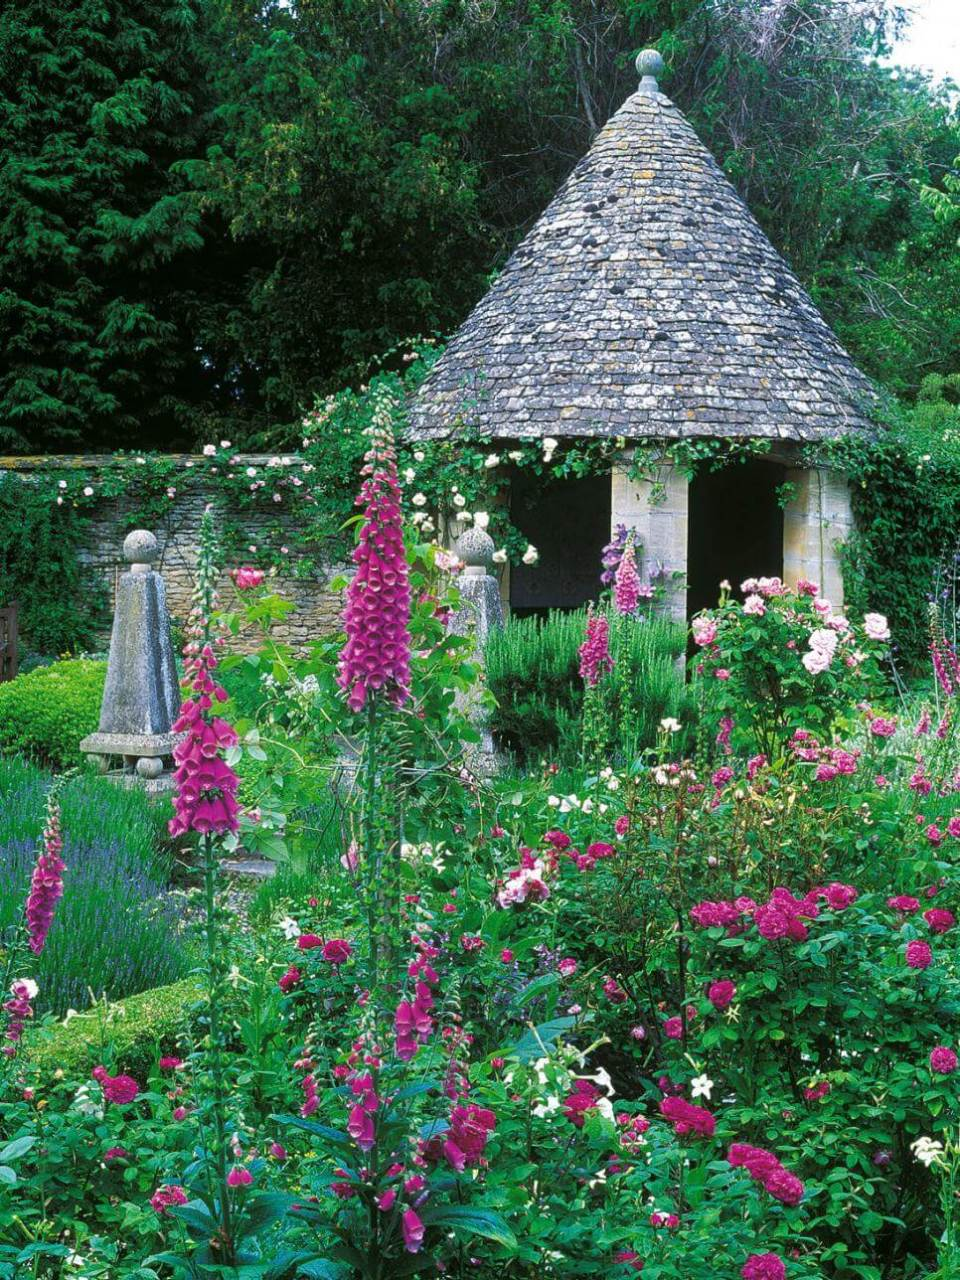 Fantasy Gazebo with Wild Gardens